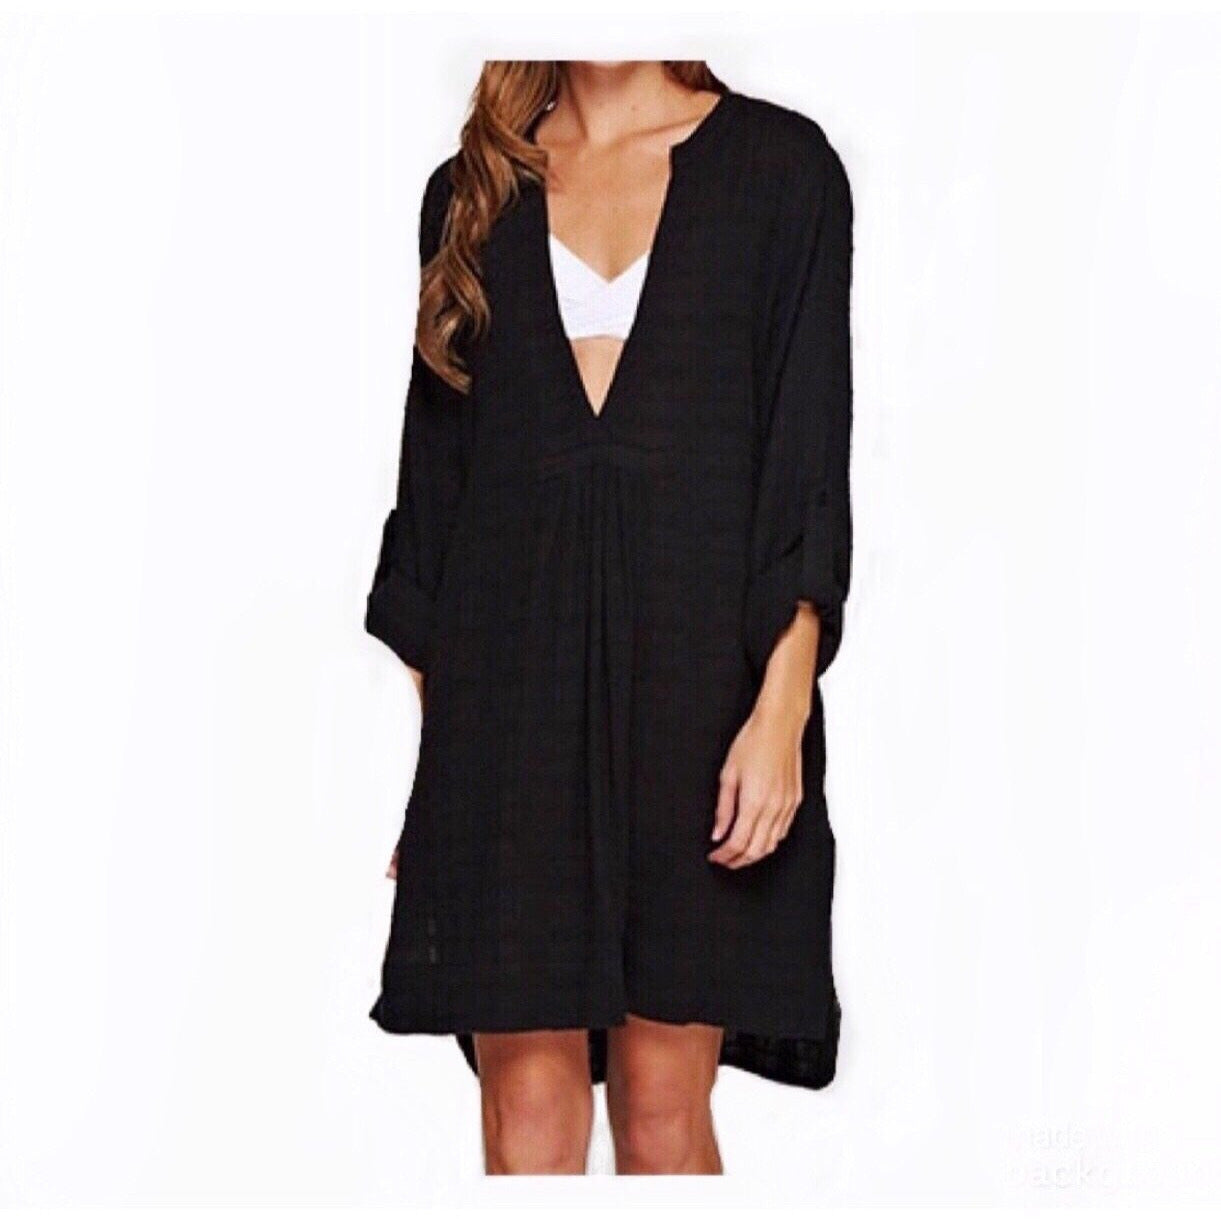 SALE ! Lindsey Cotton Gauze Cover Up Dress by Lovestitch - Glamco Boutique